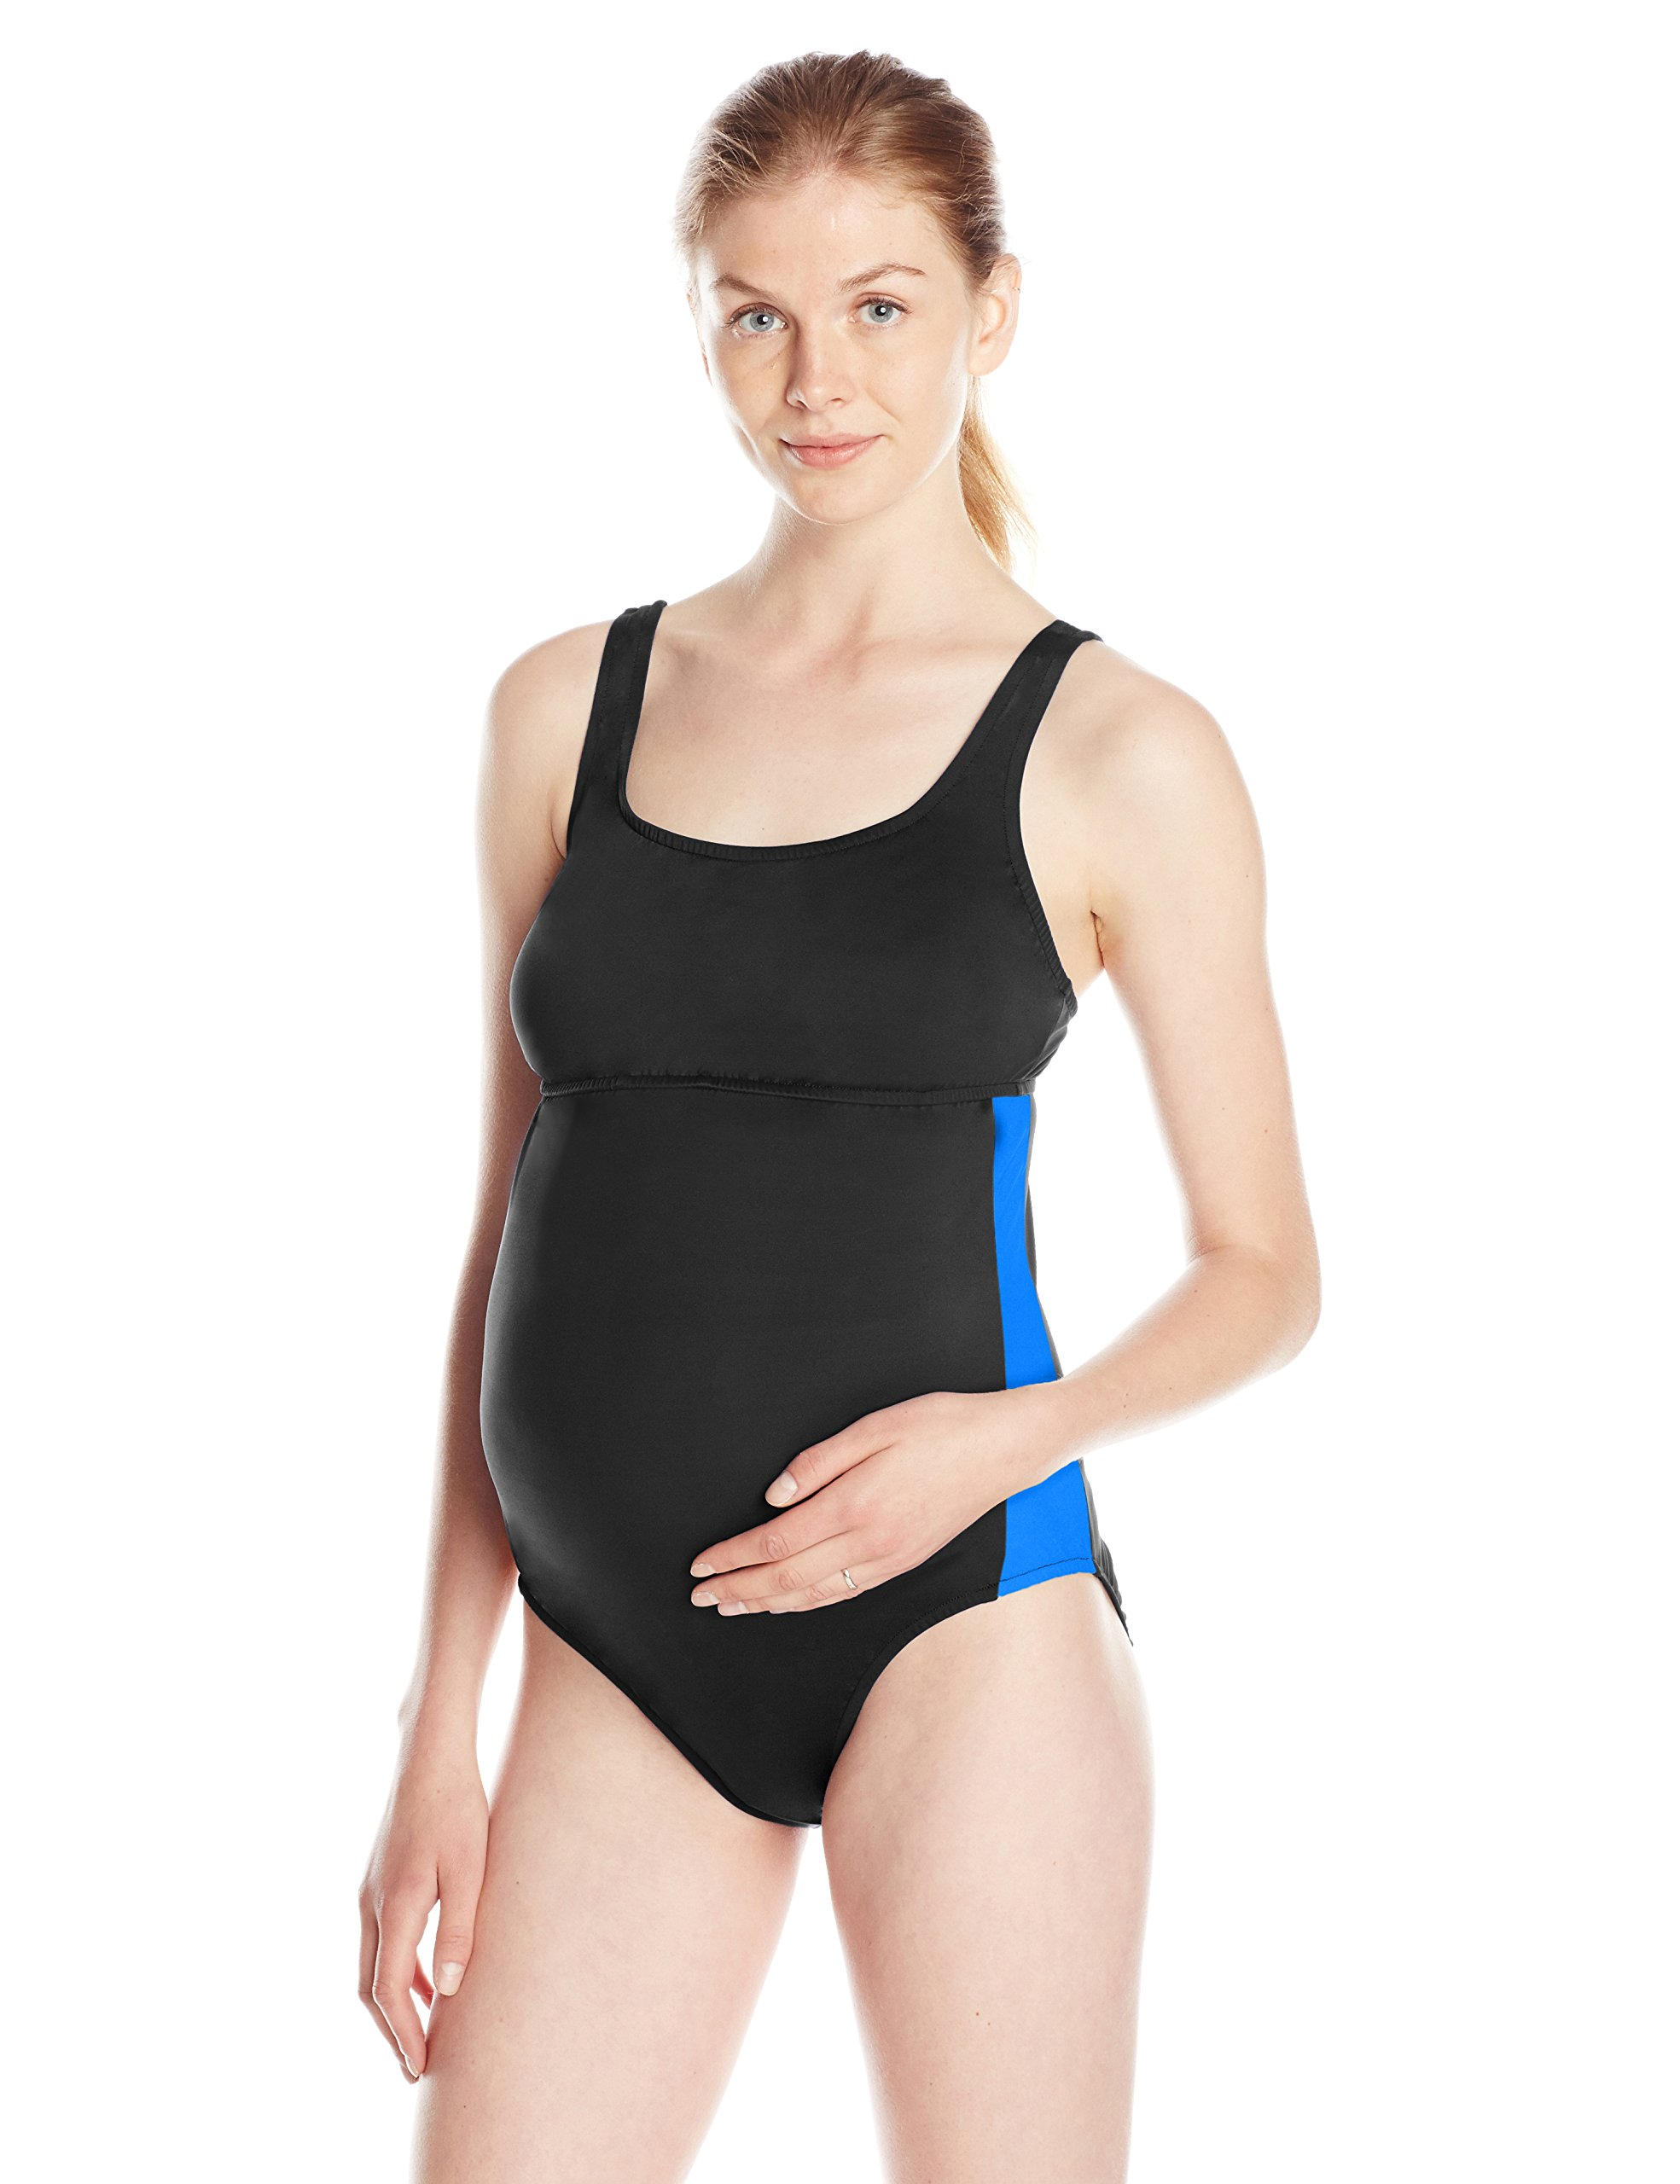 Prego Maternity Women's Maternity Sport One Piece Swimsuit, Black/Royal, X-Small by Prego